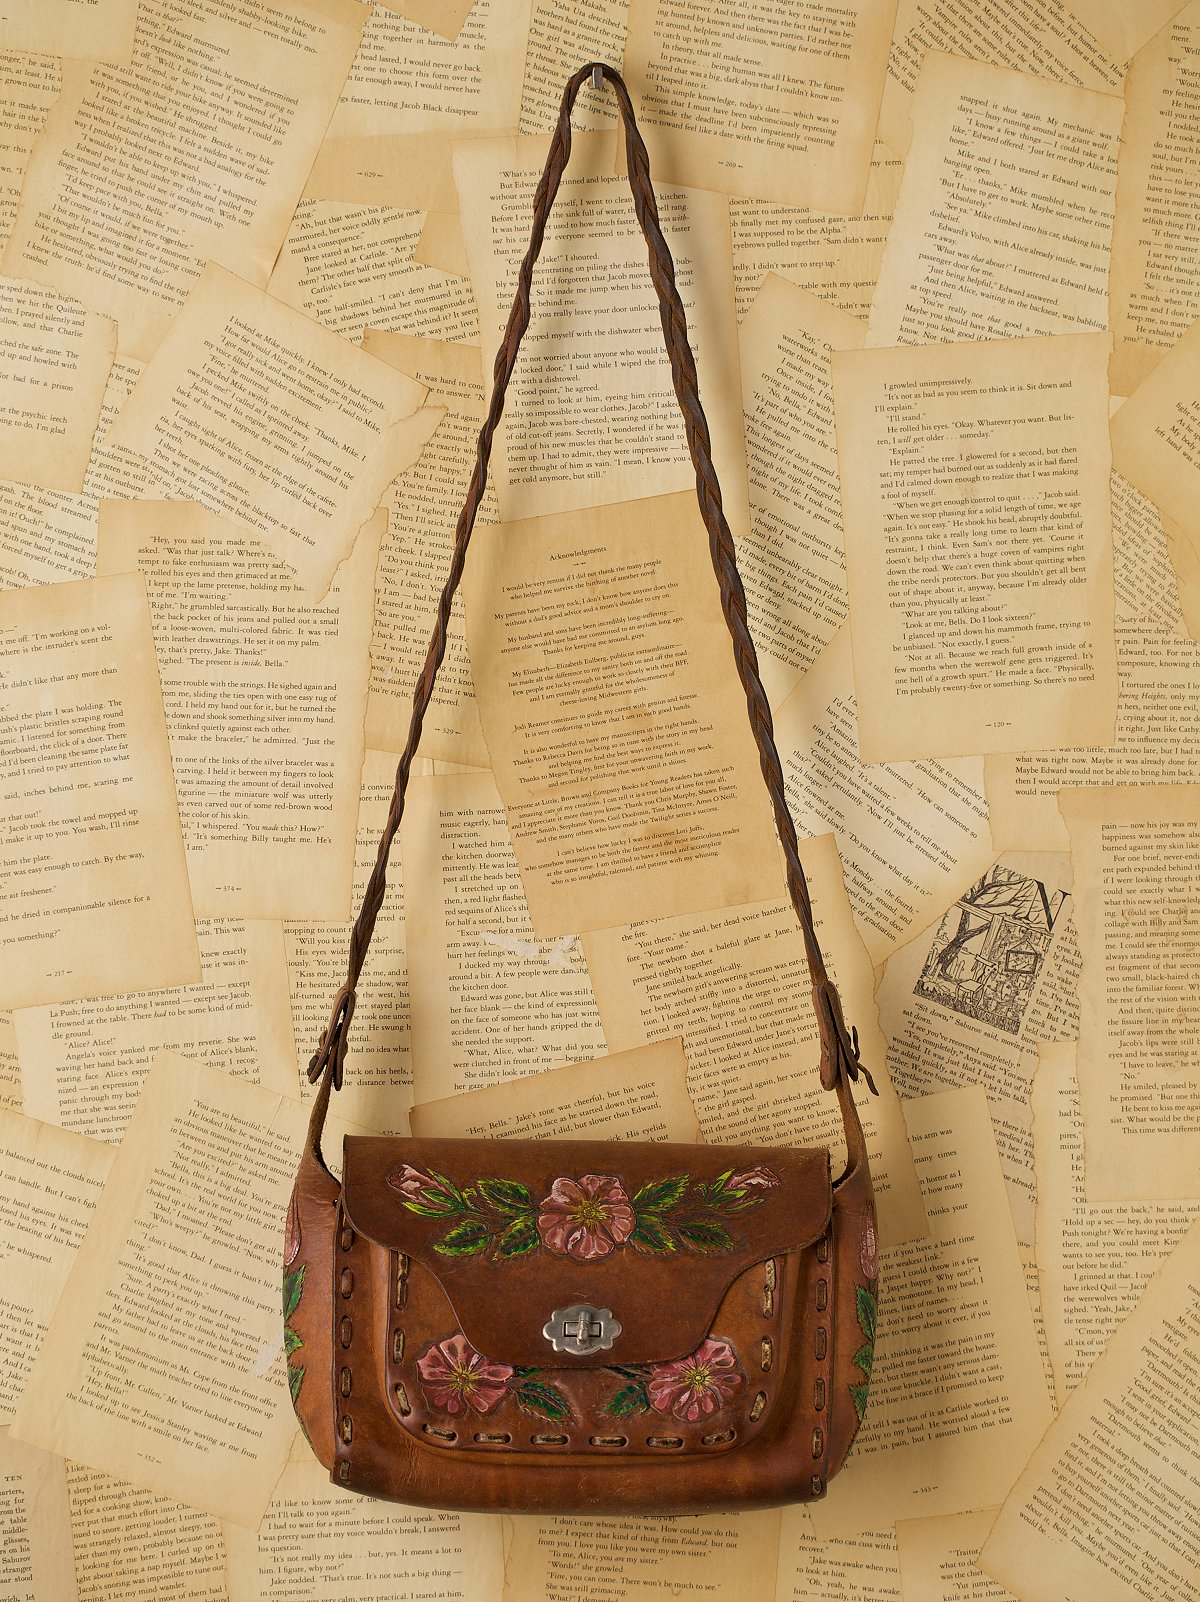 Vintage Painted Leather Bag with Braided Strap